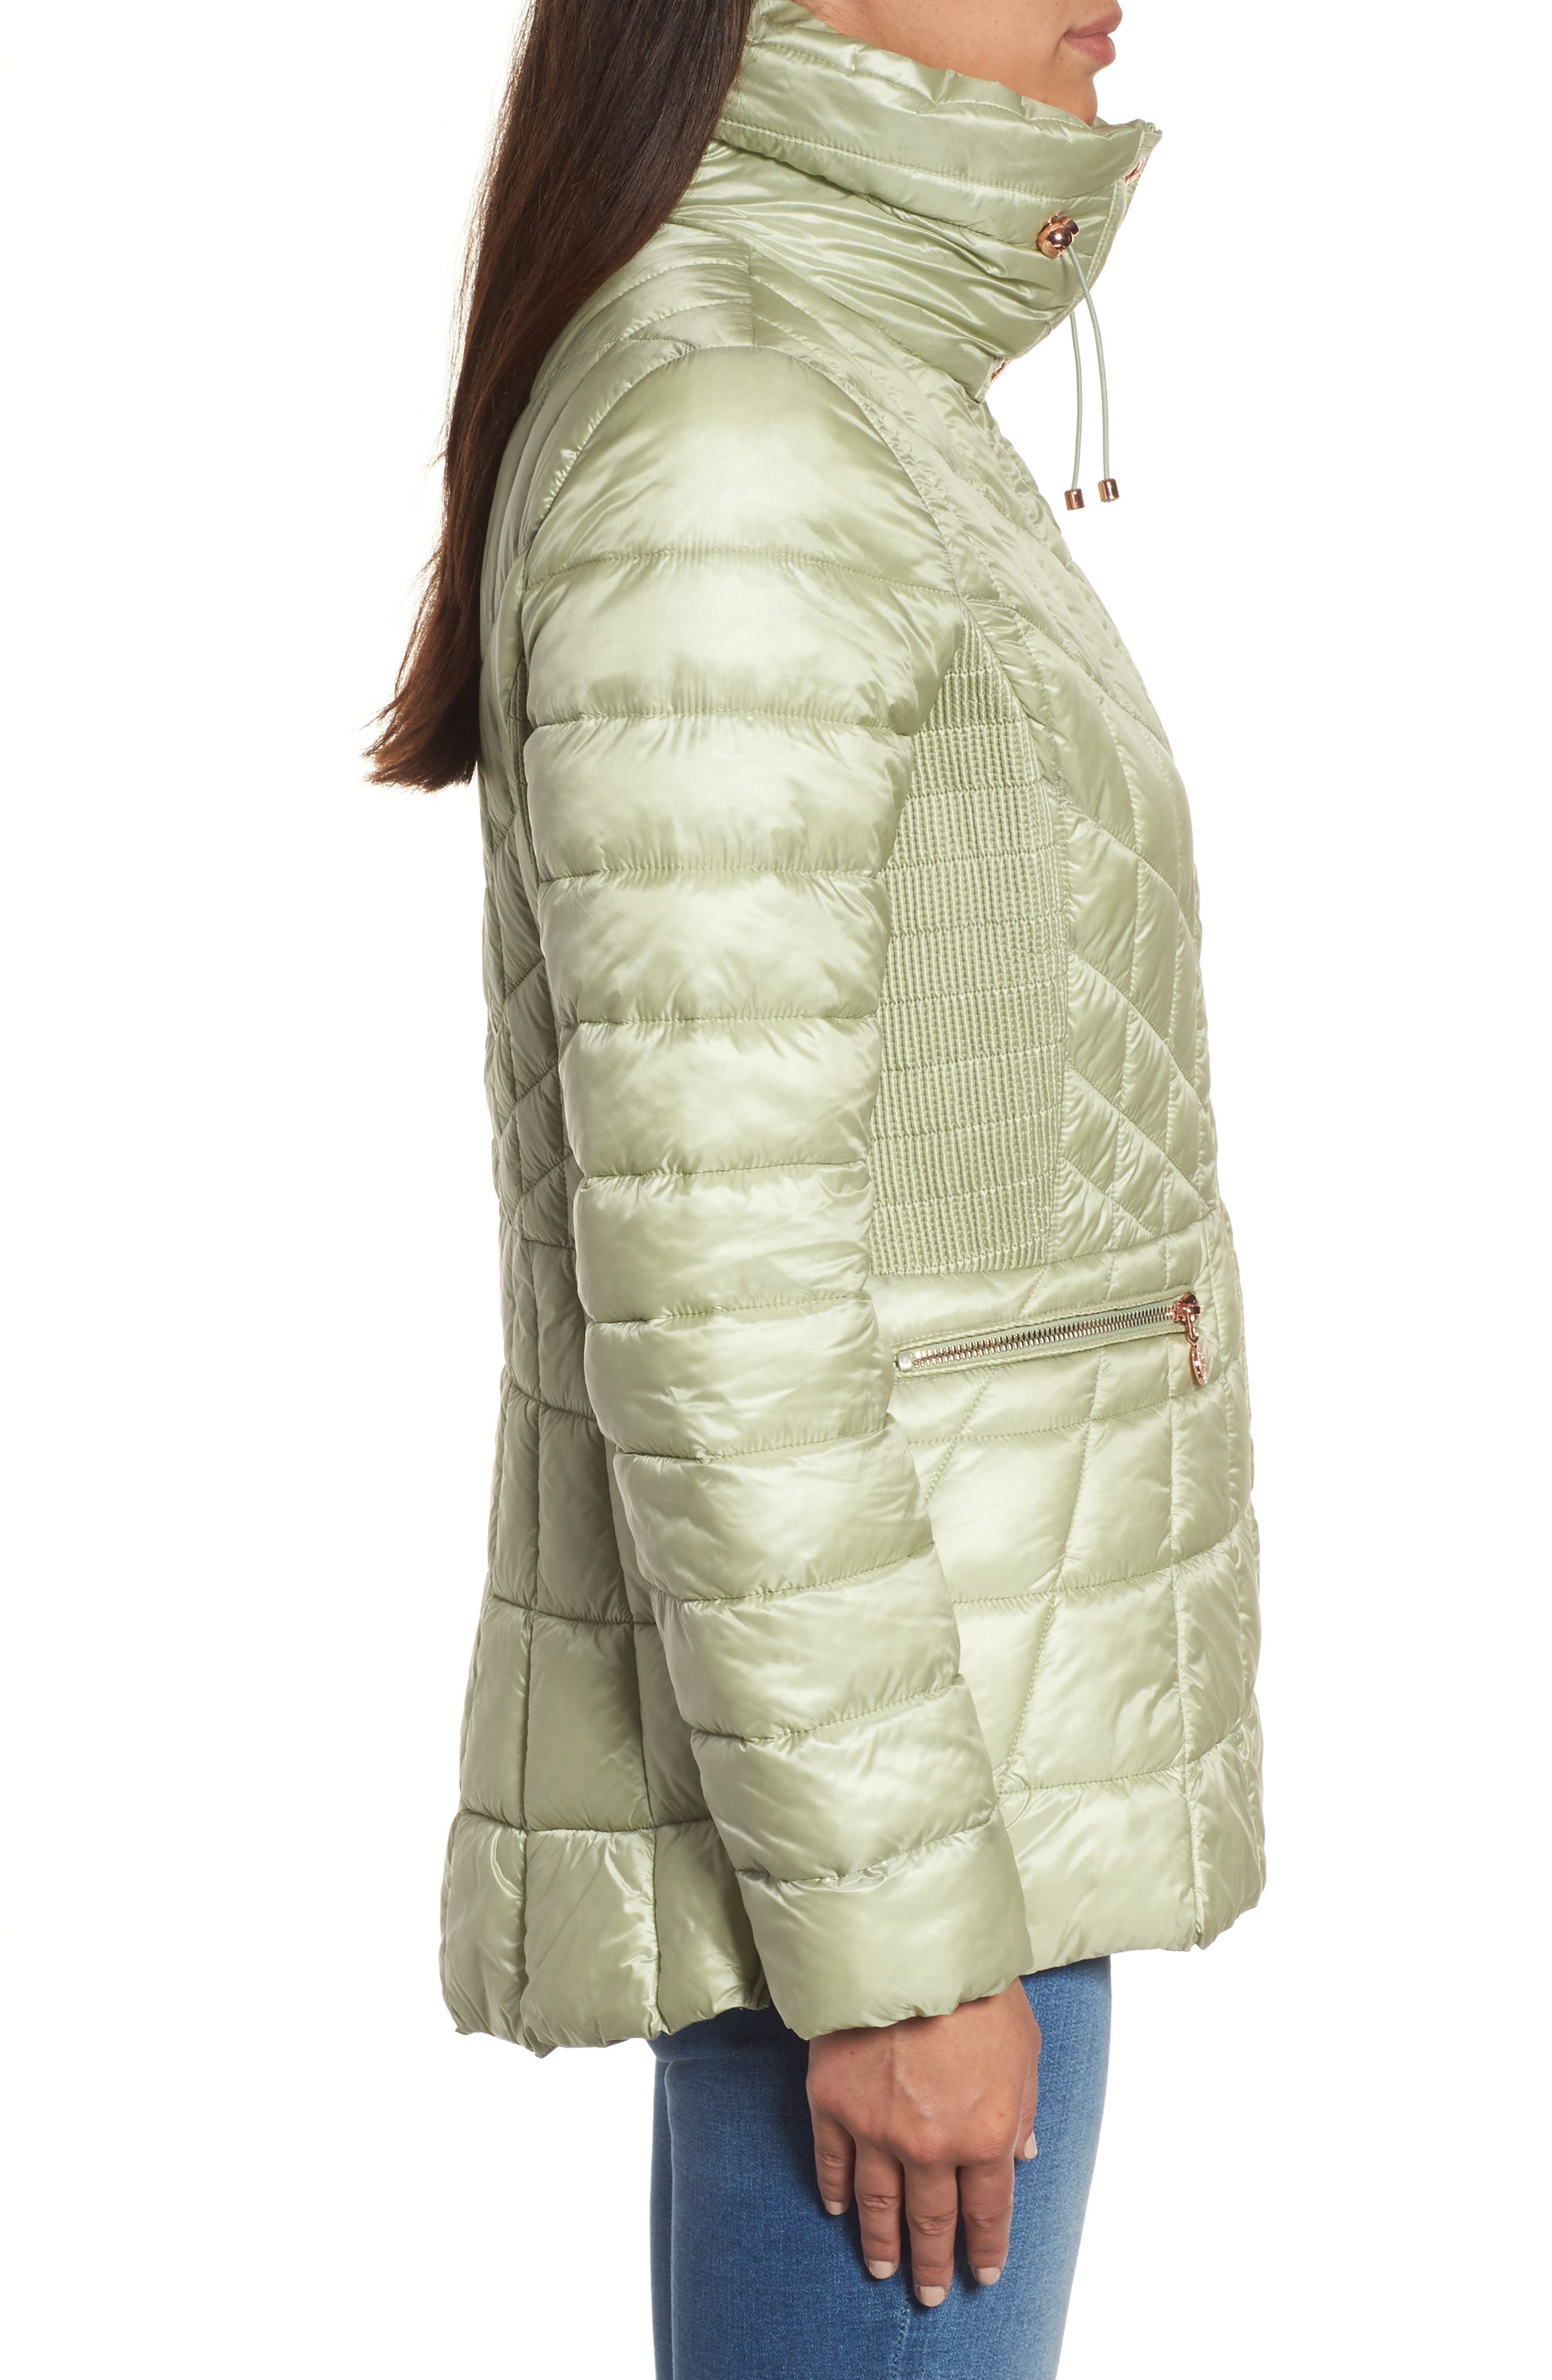 Thermoplume Insulated Jacket,                             Alternate thumbnail 16, color,